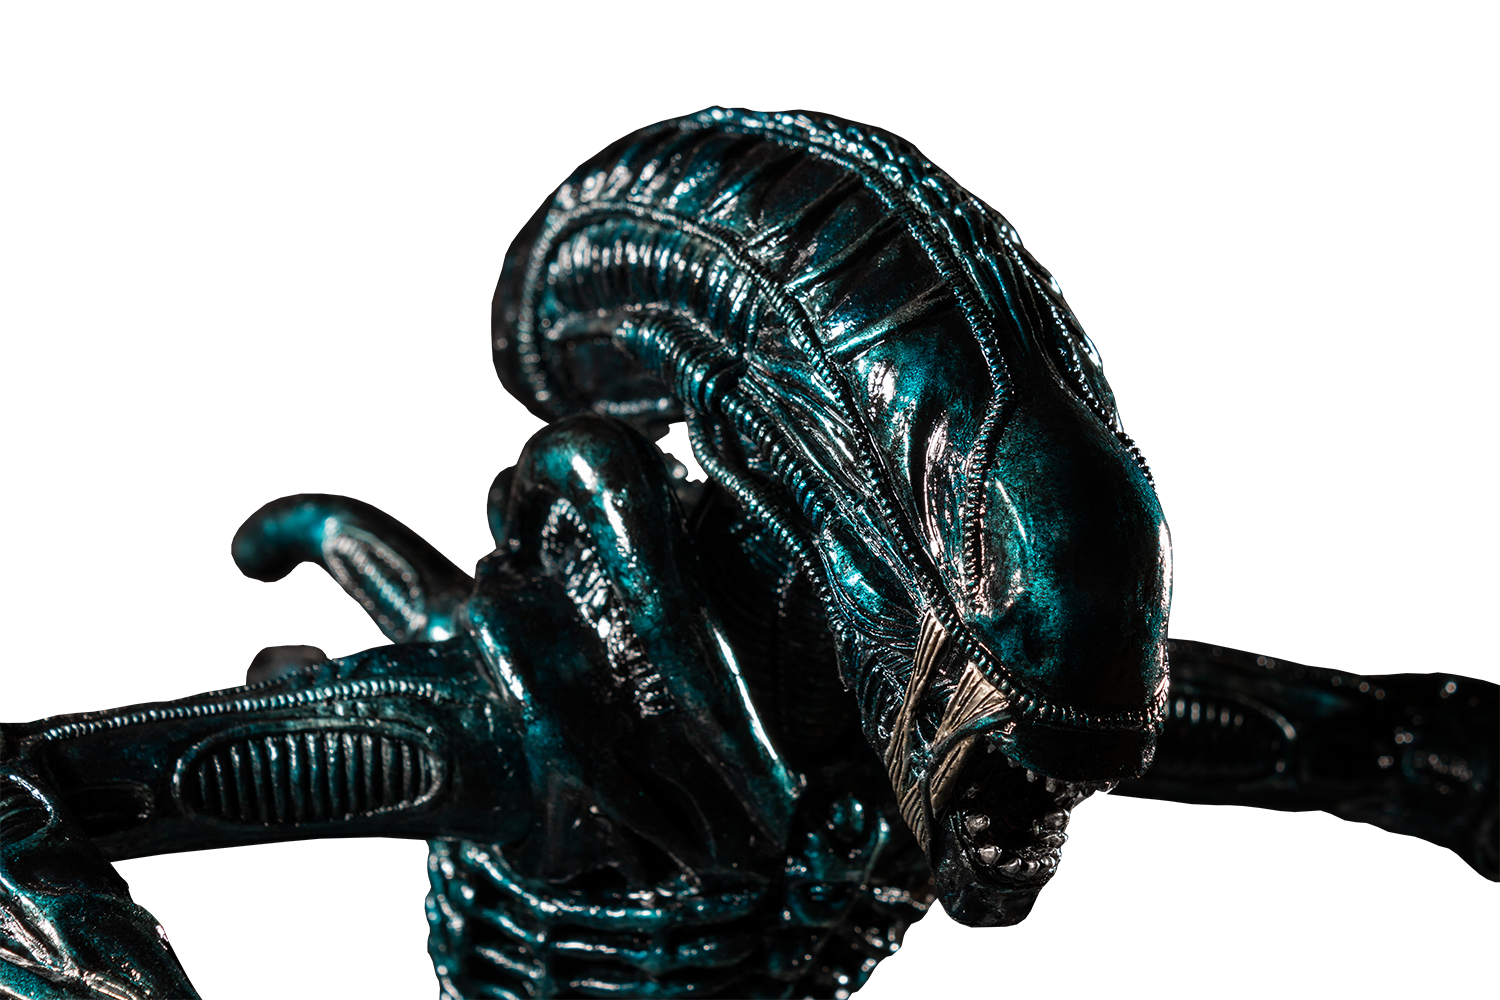 IKO1124-Alien-in-Water-Statue-New-Paint-14-246.png